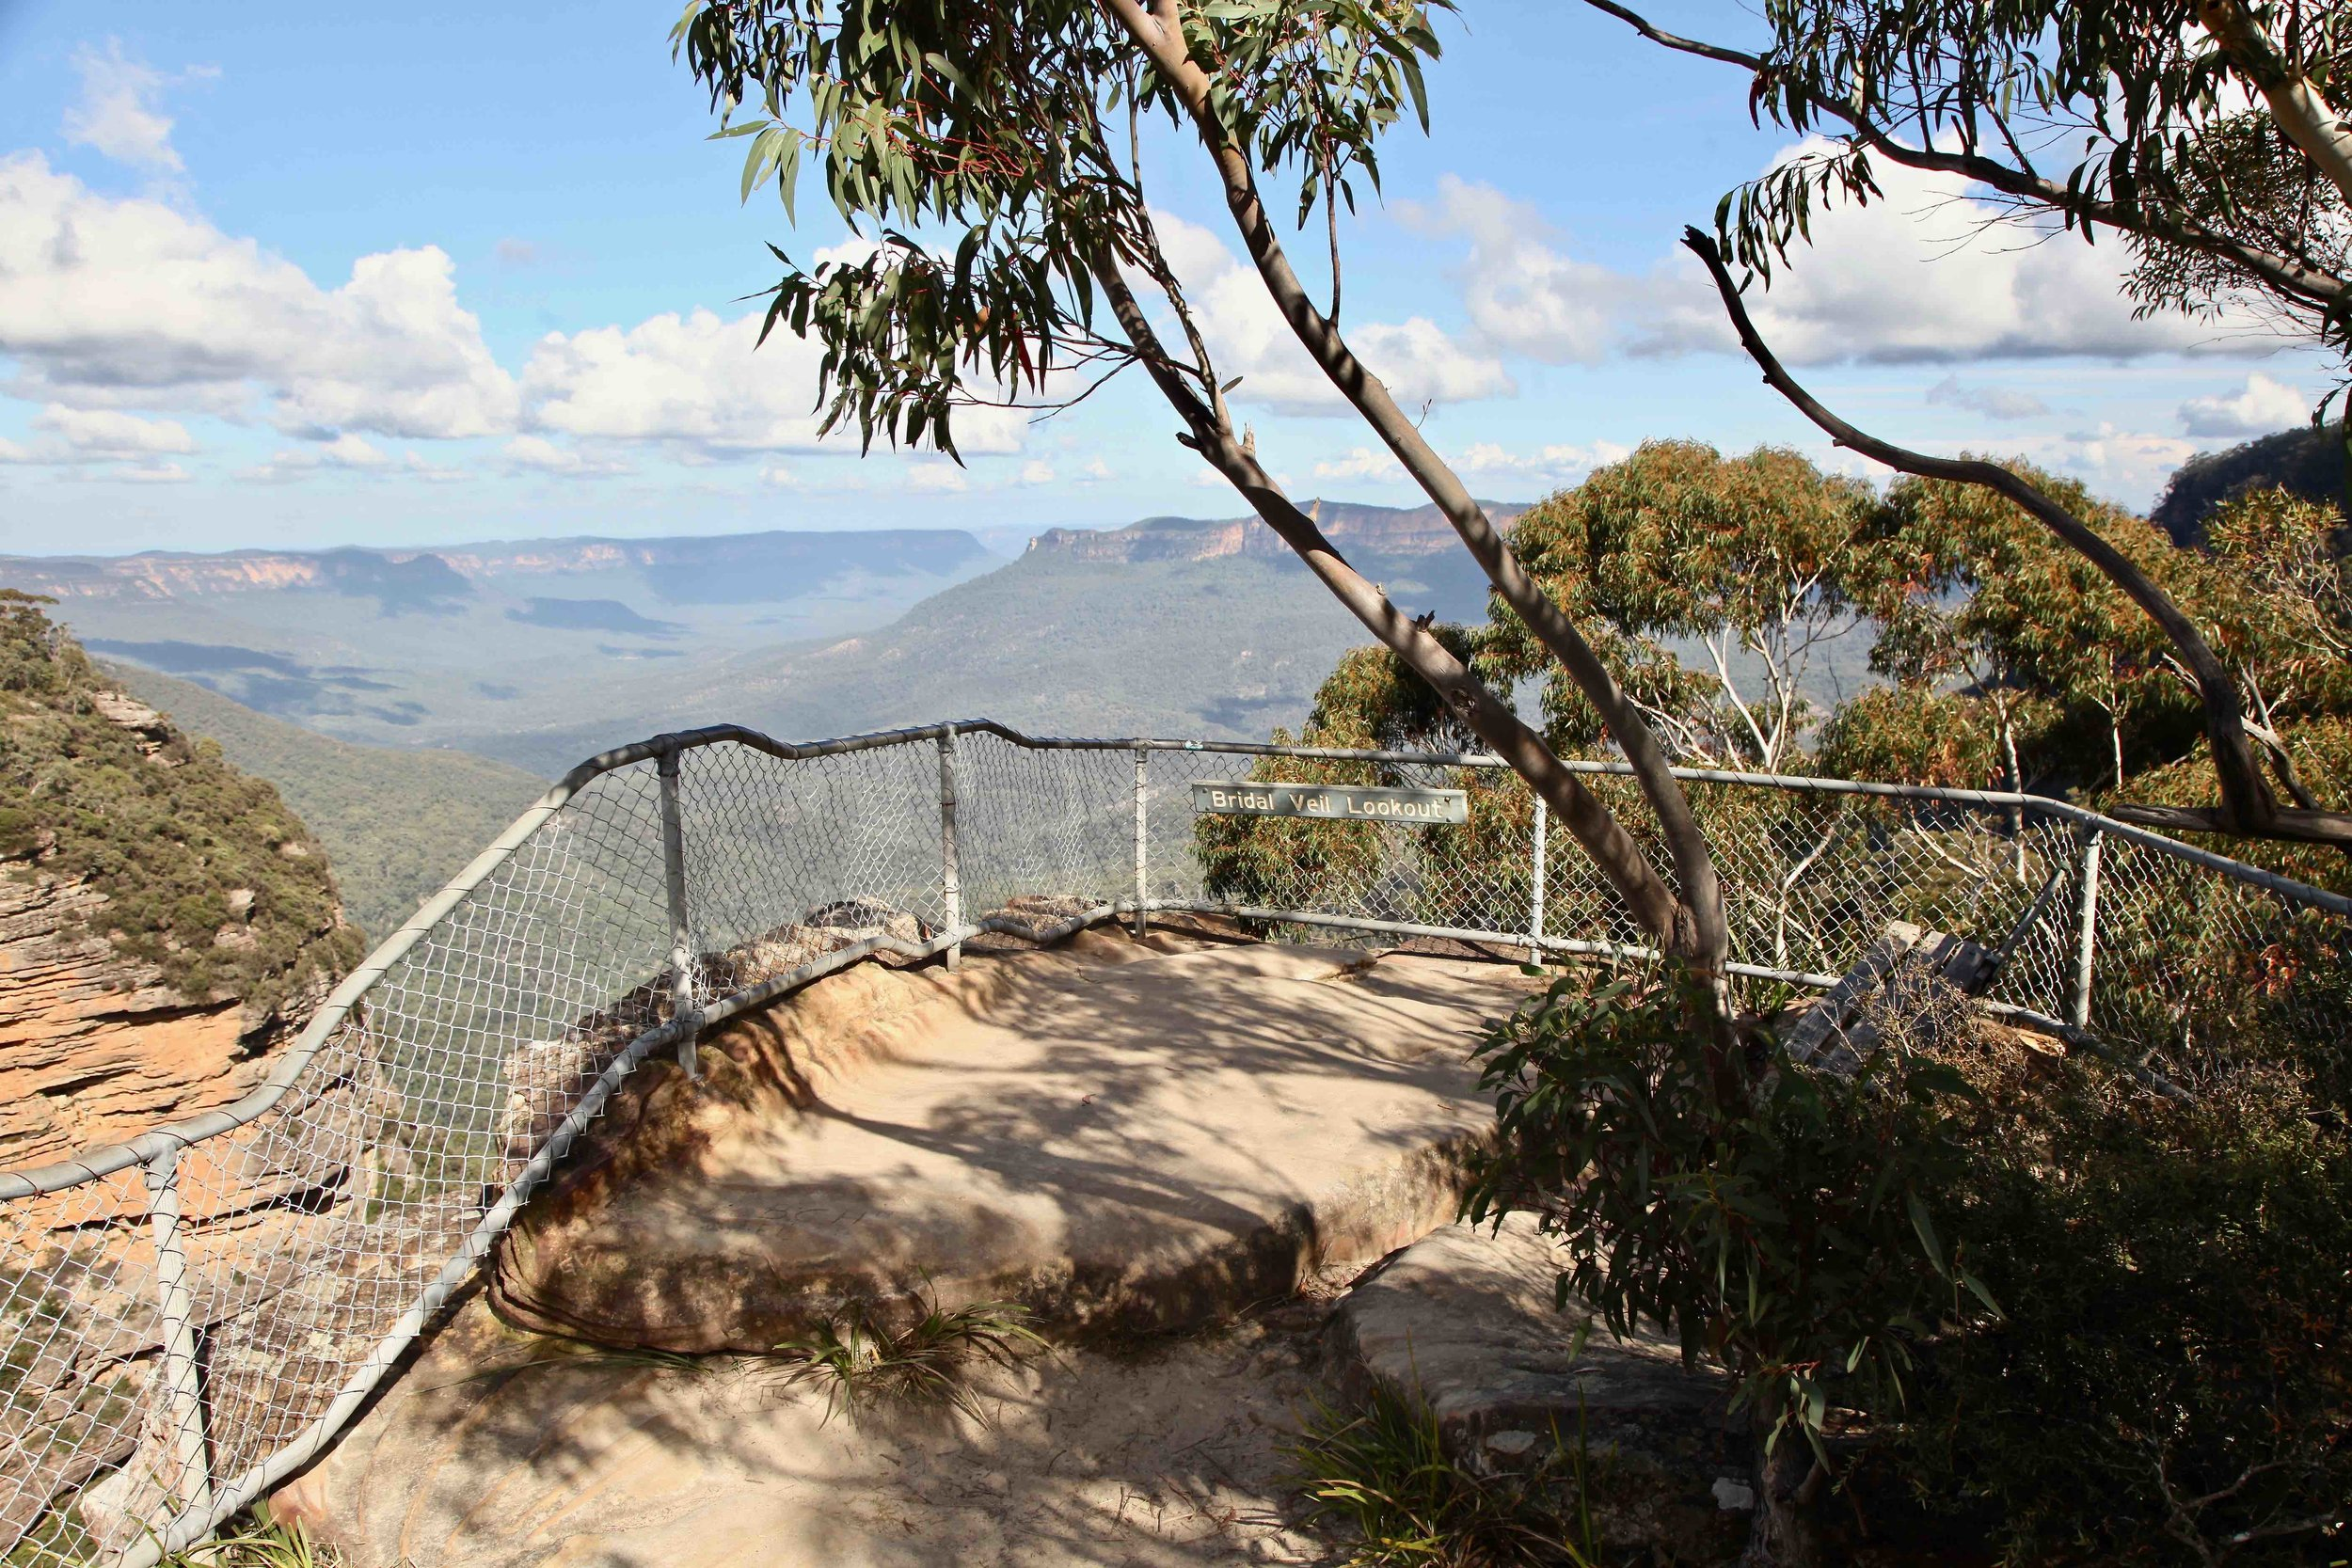 Bridal Veil Lookout, one of the many lookouts dotted along the cliff walk between Katoomba and Leura.